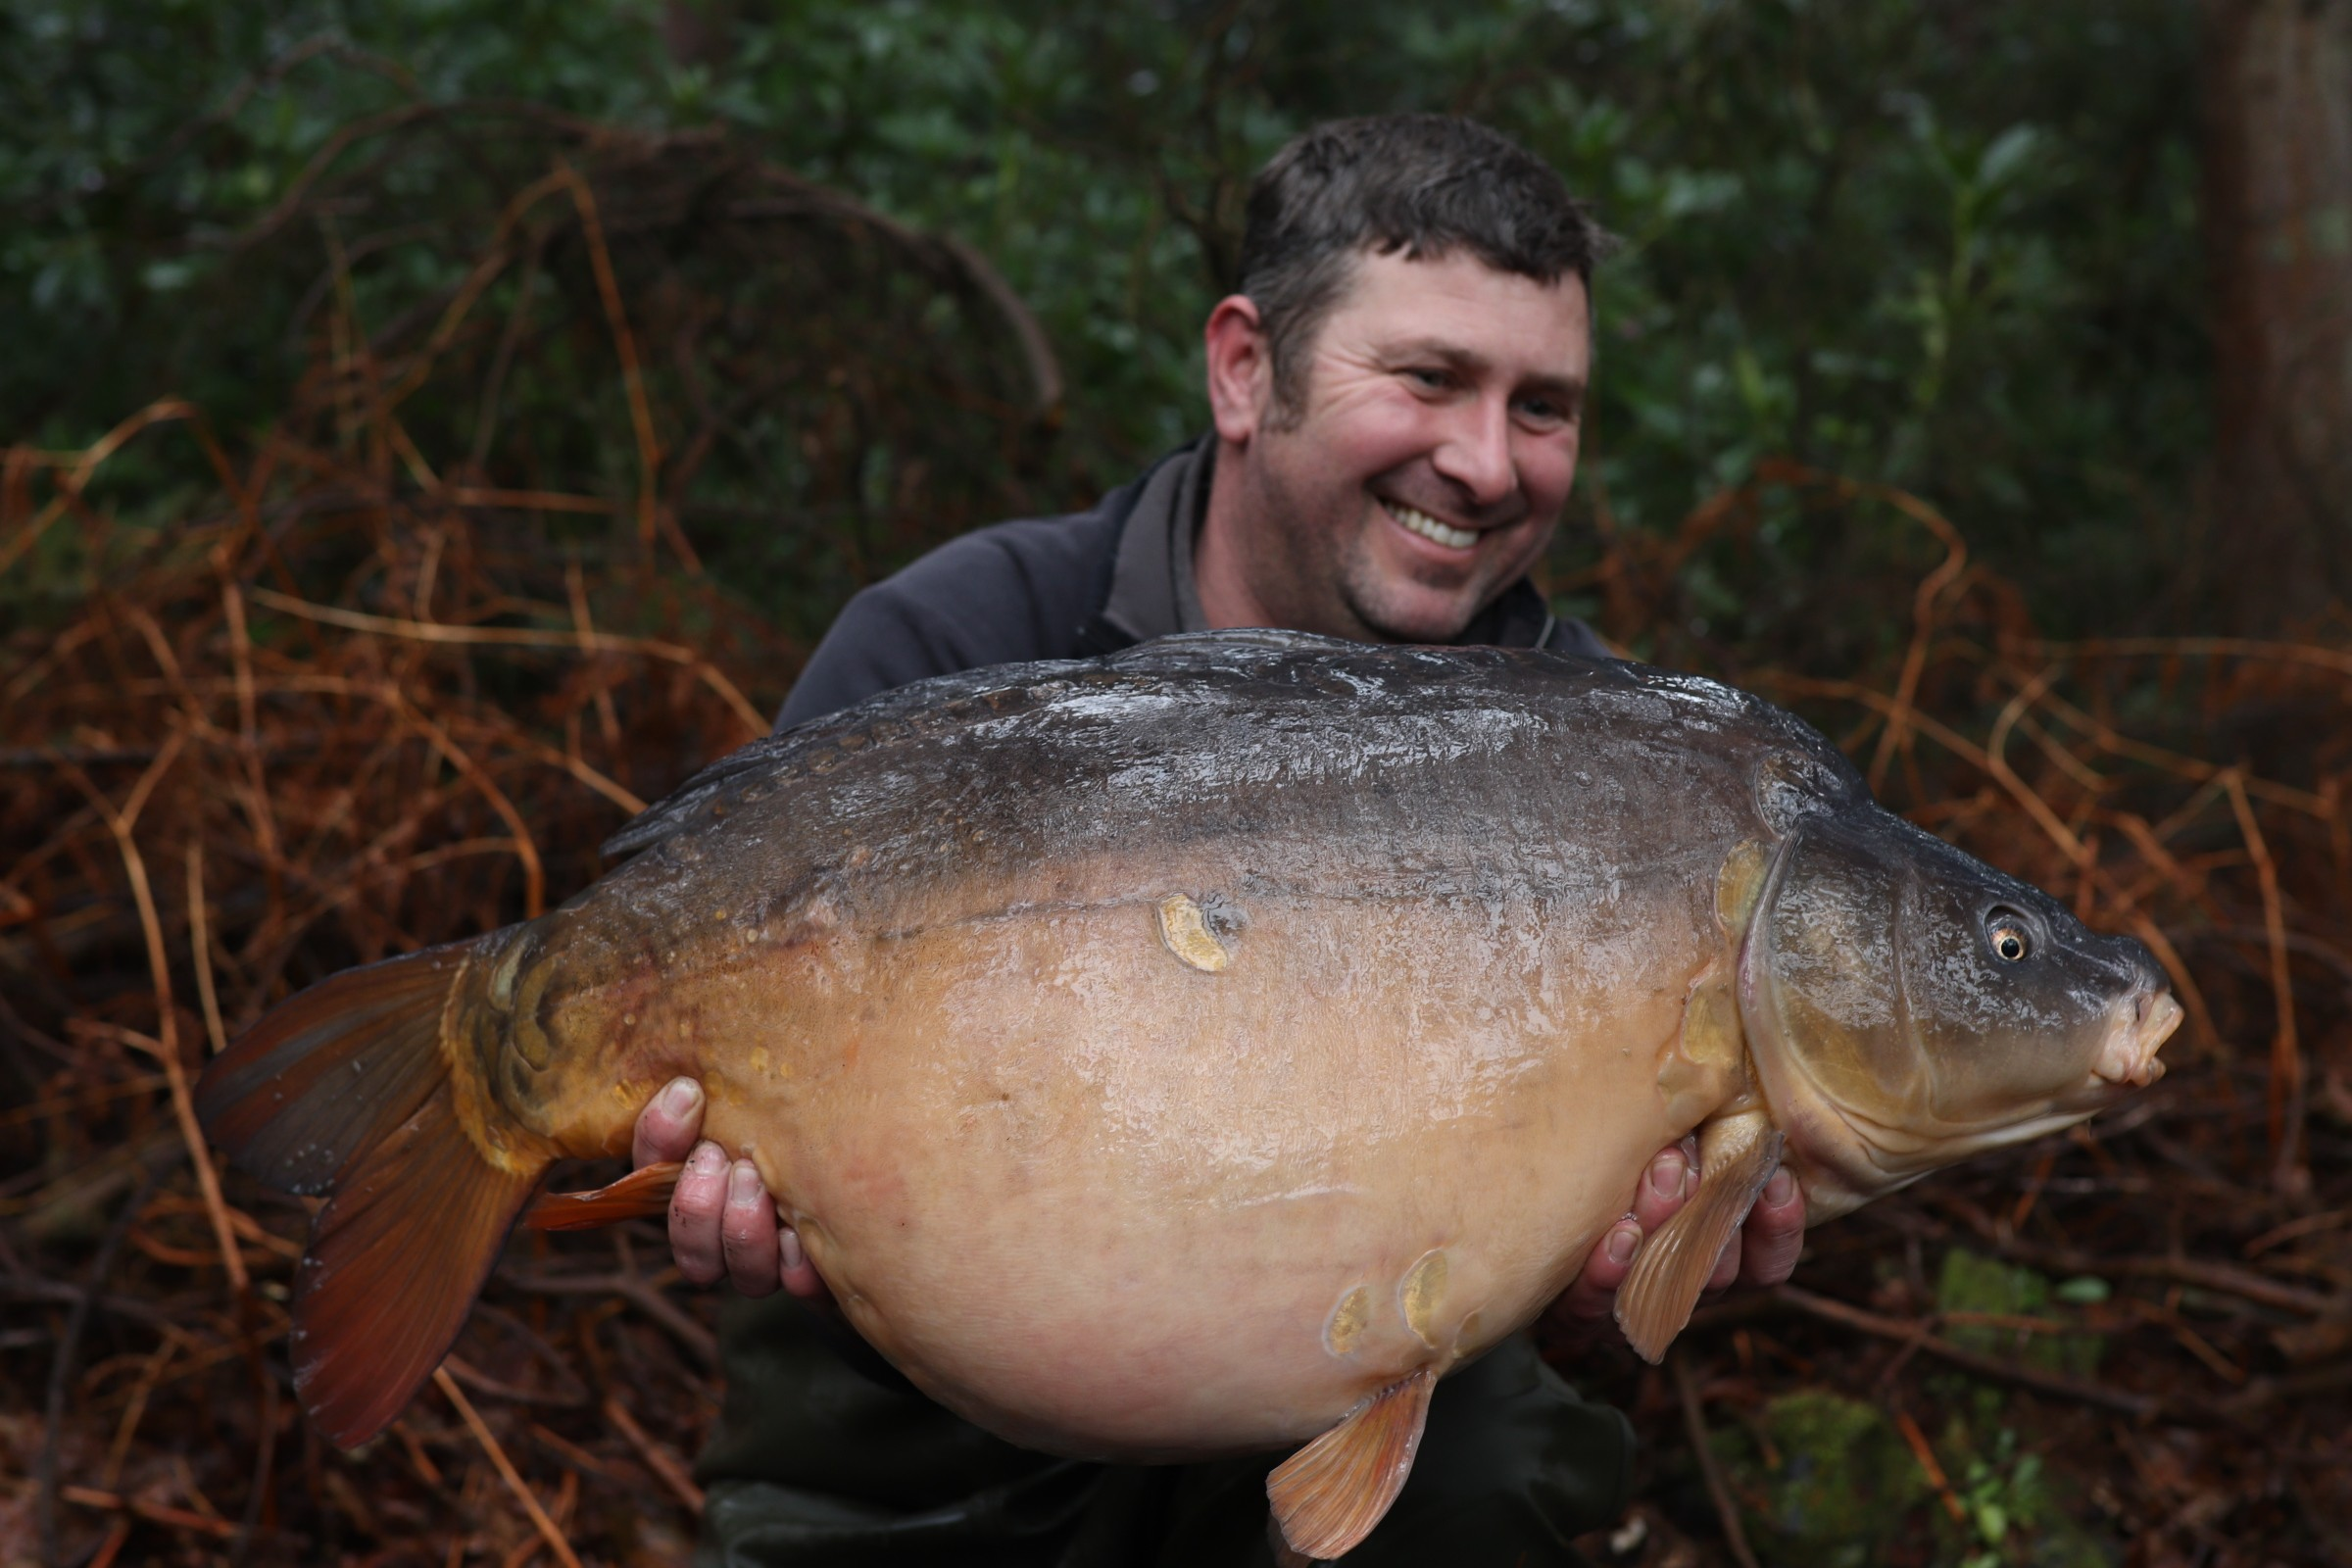 36lb 12oz  caught on Boilies